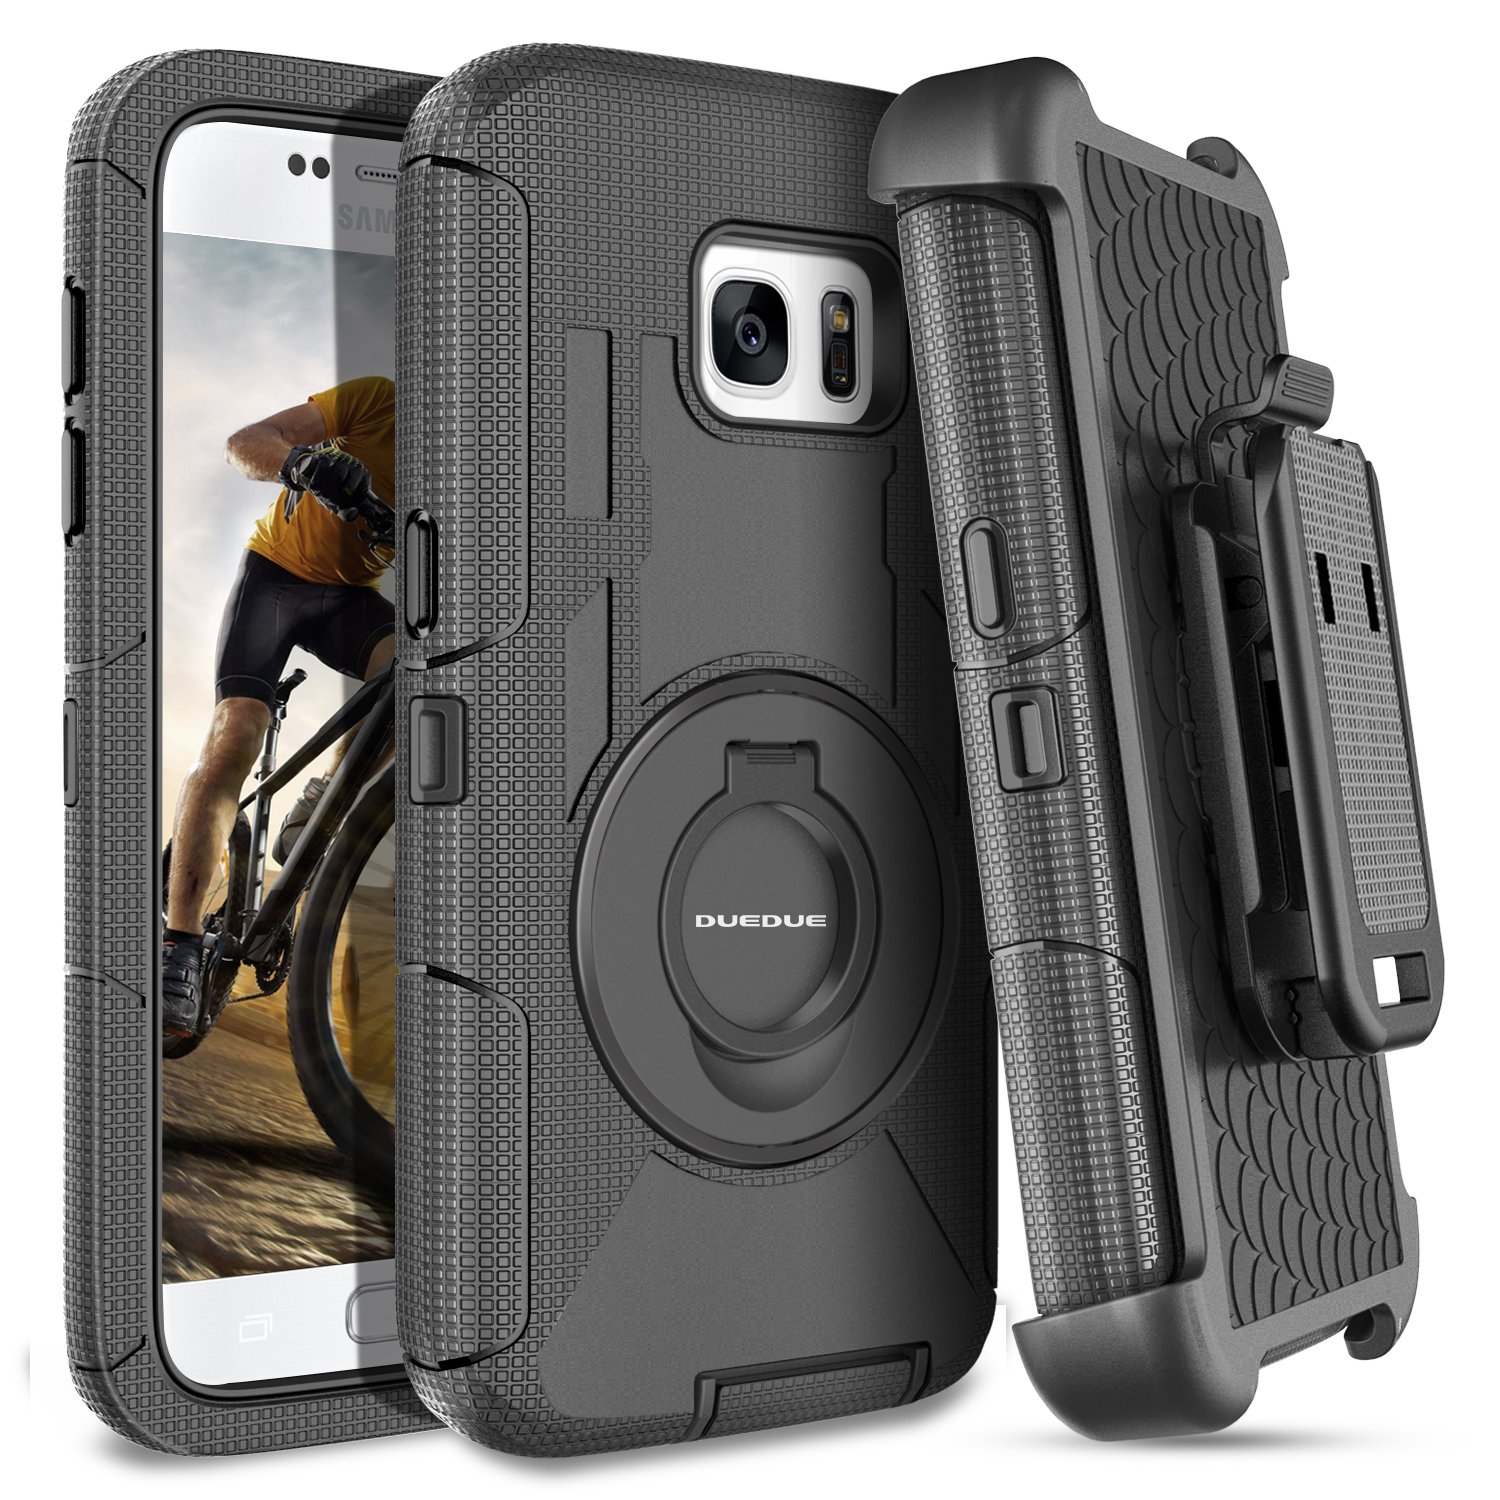 S7 Case,Galaxy S7 Case,DUEDUE Ring Kickstand Belt Clip Holster,Shockproof Heavy Duty Hybrid Hard PC Soft Silicone Full Body Rugged Protective Case for Samsung Galaxy S7 (G930), Black by DUEDUE